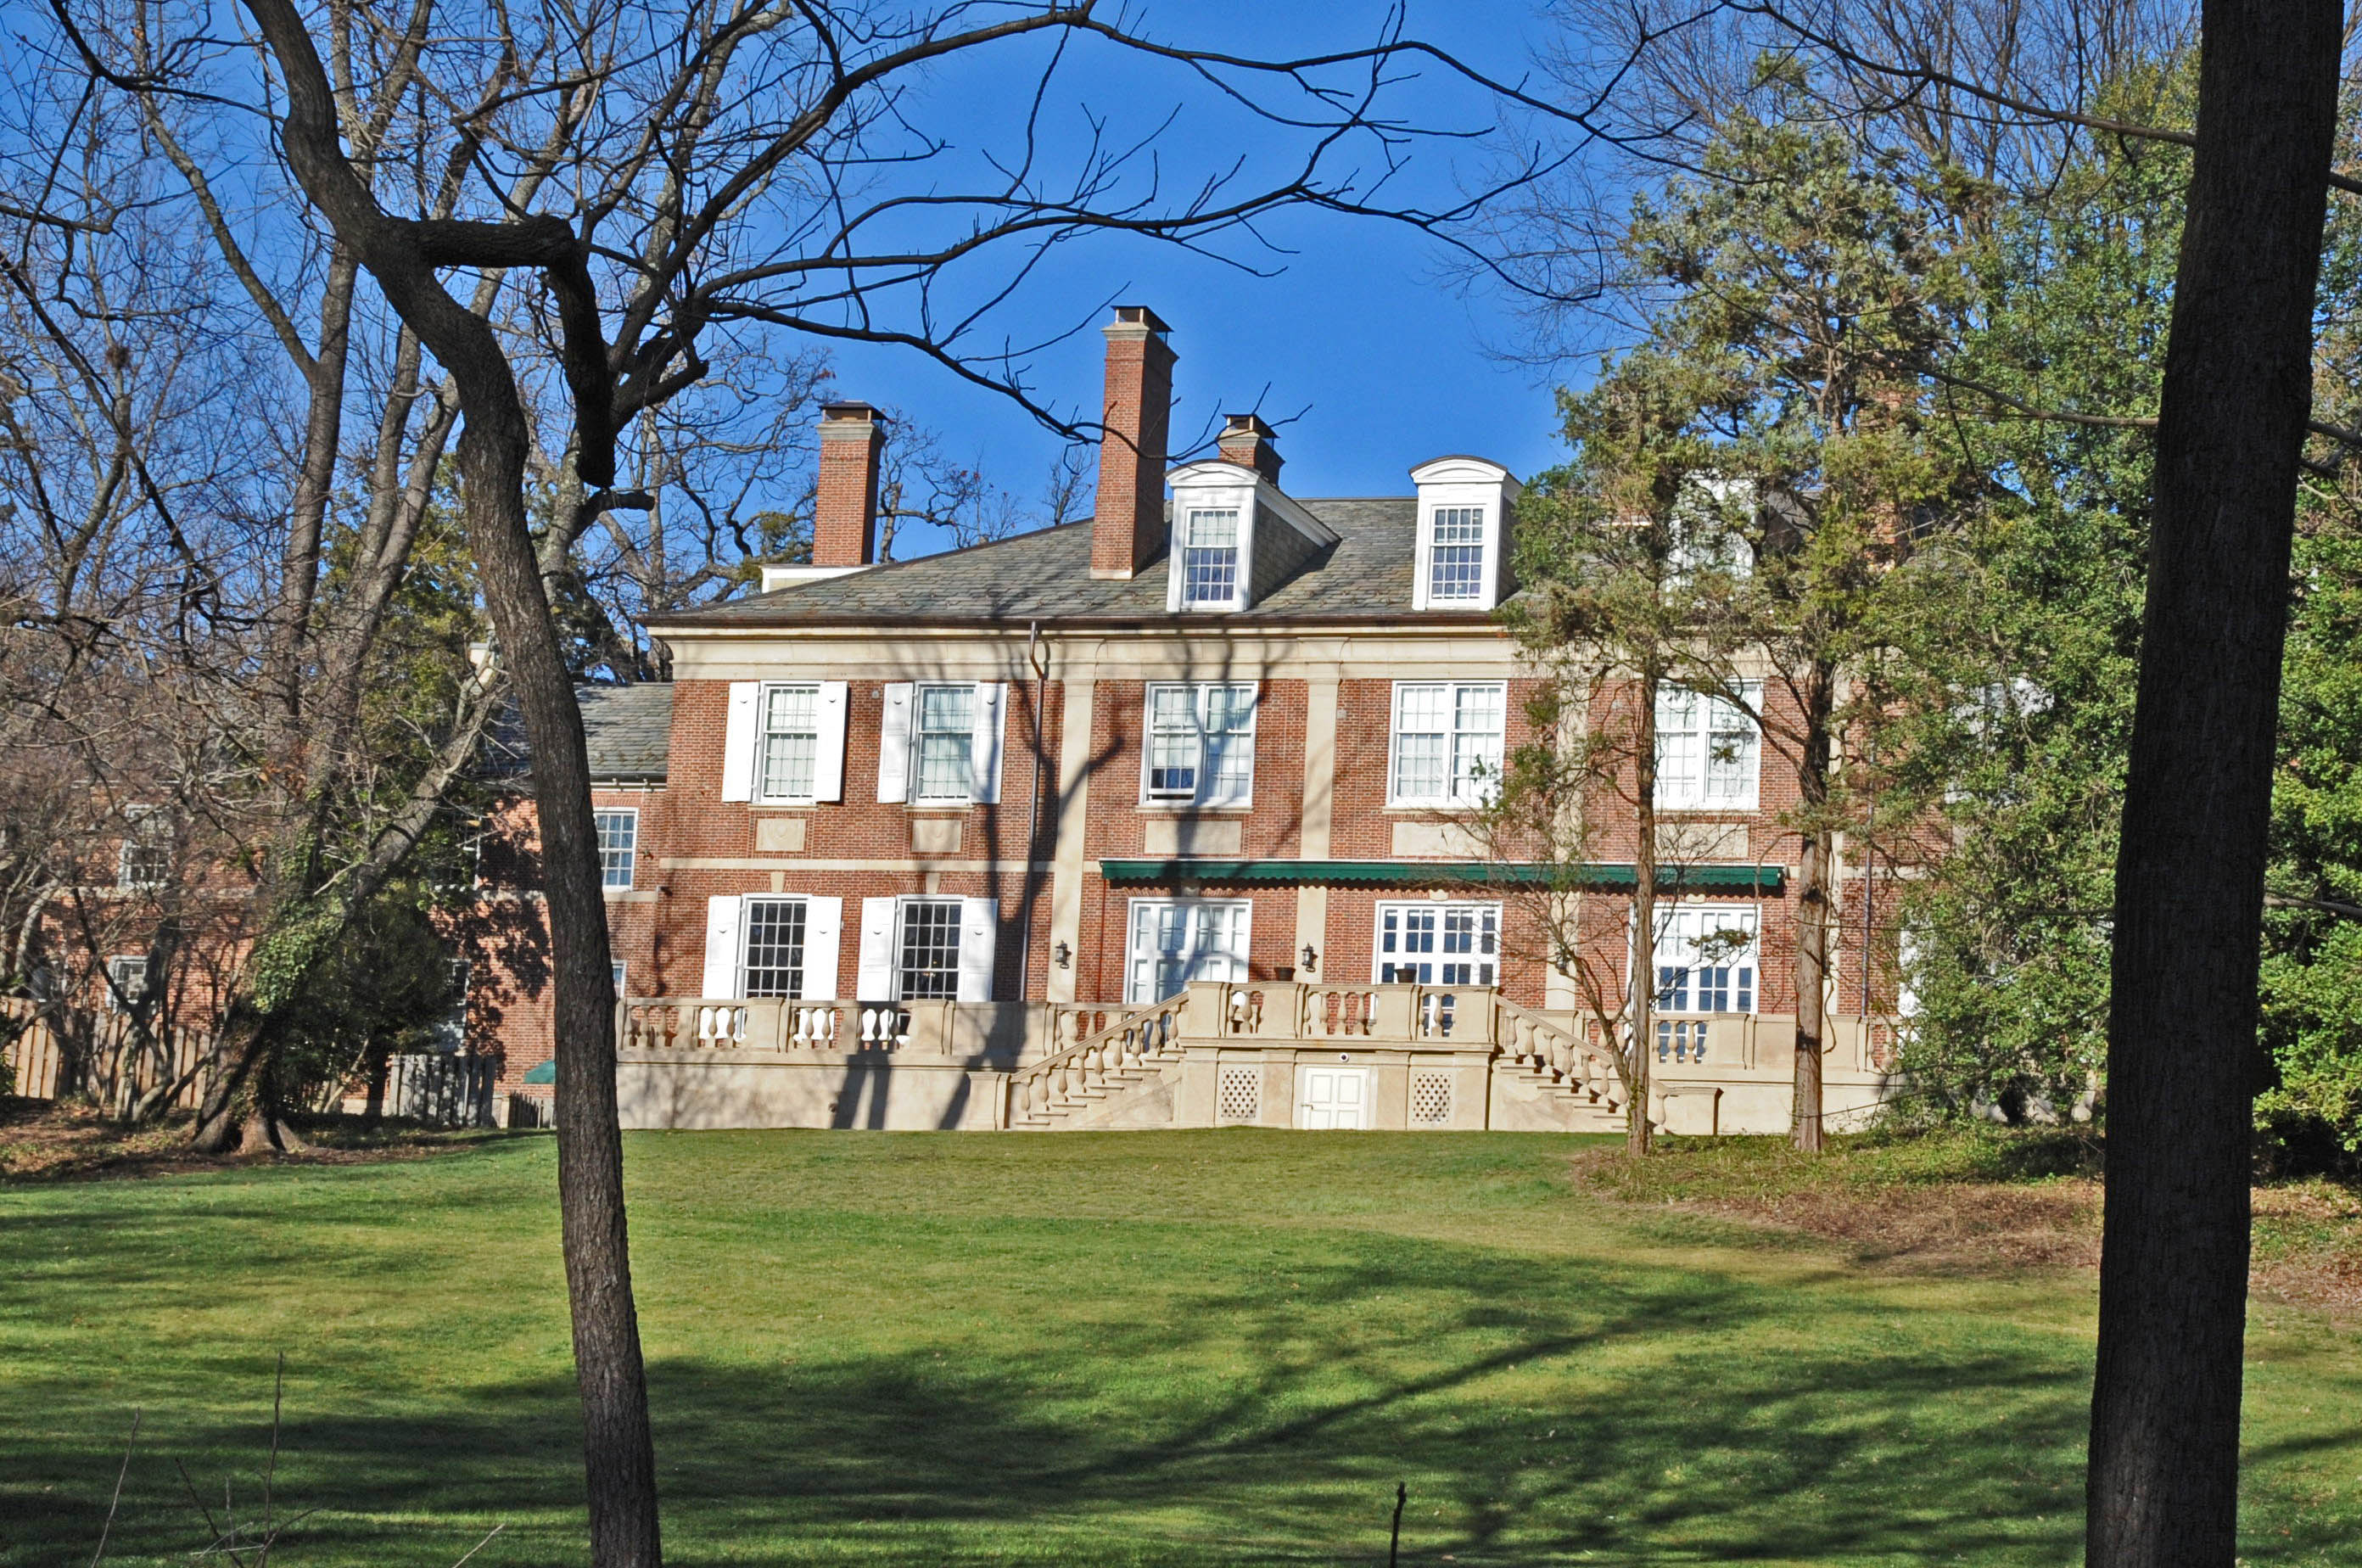 A view of the Tregaron Estate mansion, now part of the Washington International School. Photo by Jerrye & Roy Klotz, Wikimedia